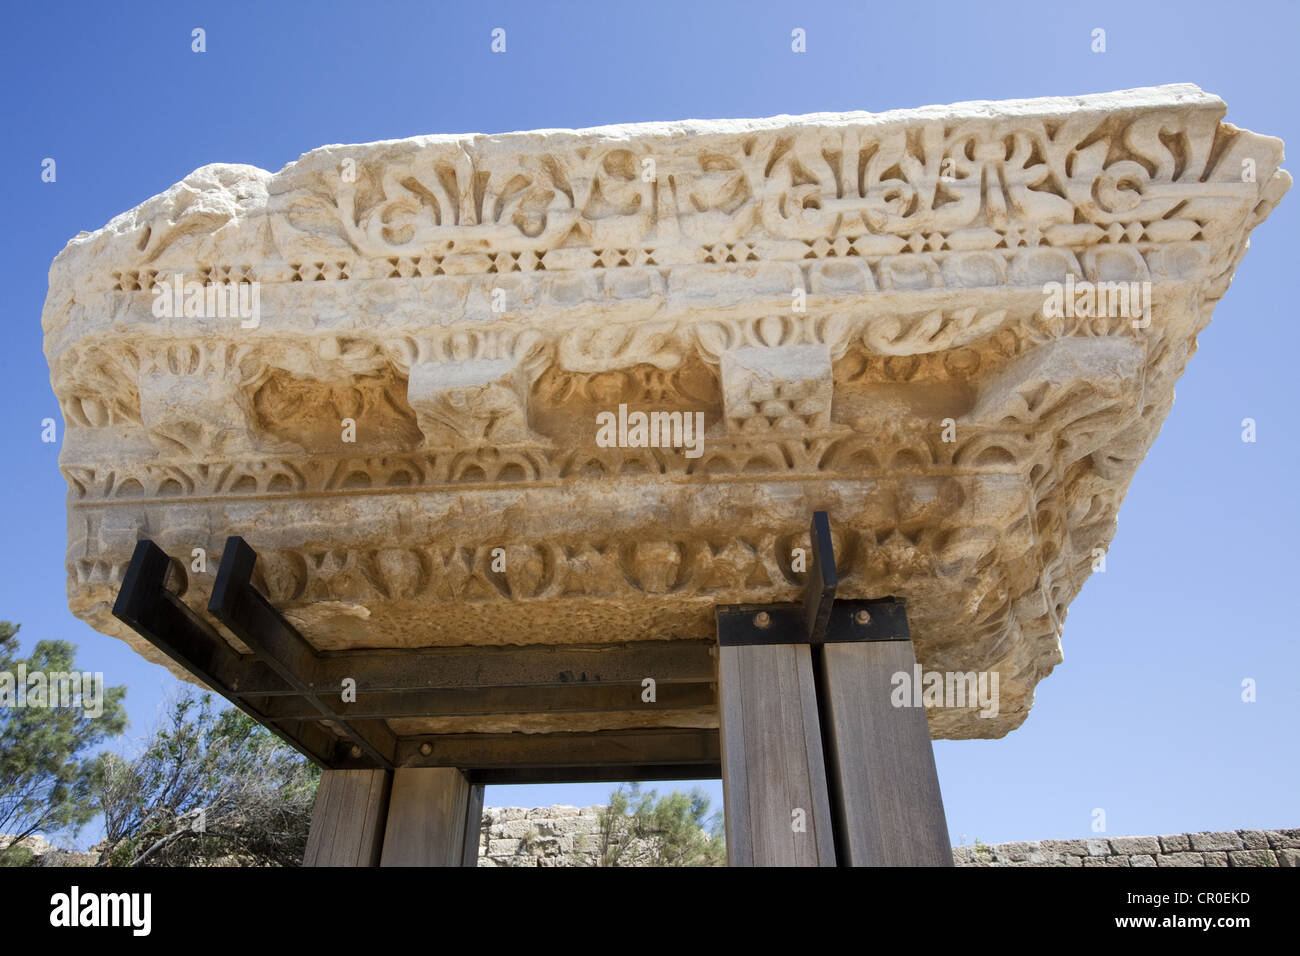 Architectural artifact showing the ornamentation of a cornice and gable at historic Caesarea Maritima, Israel - Stock Image